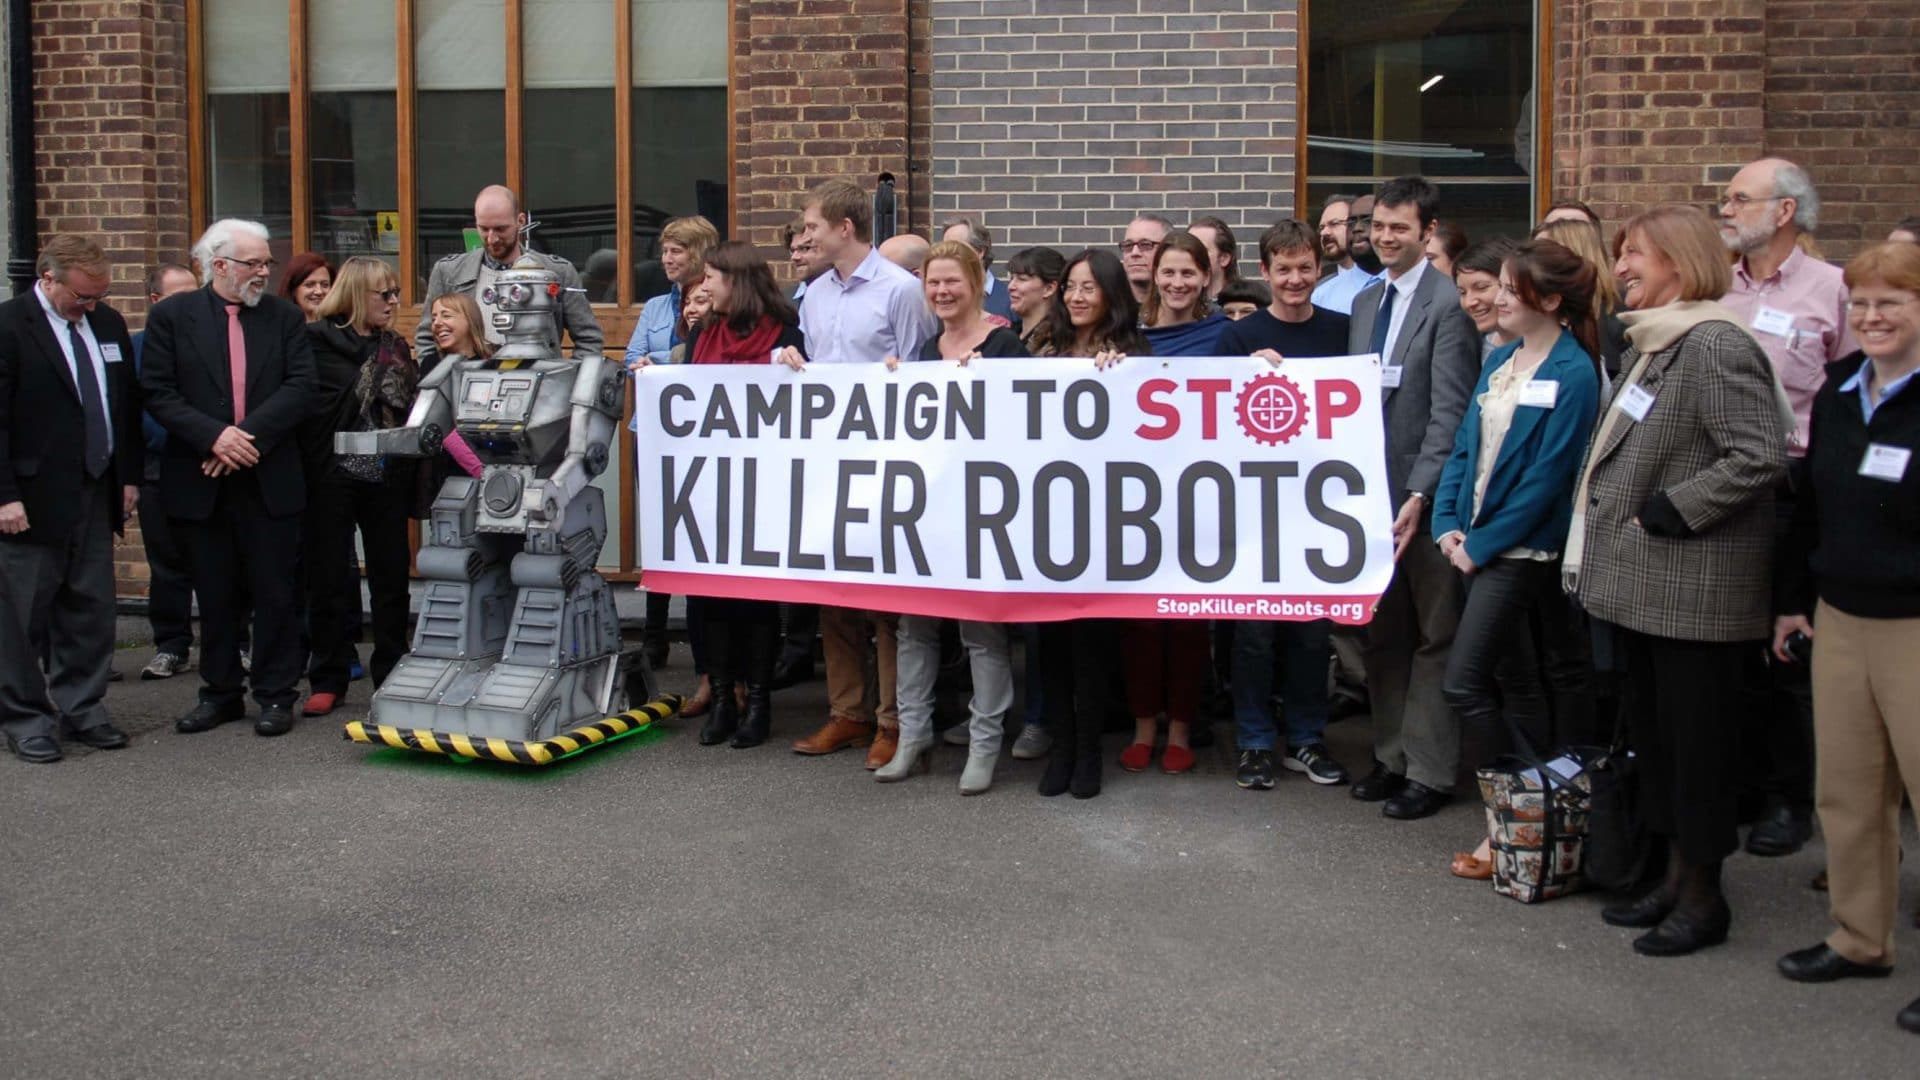 Activists hold a banner for the Campaign to Stop Killer Robots.